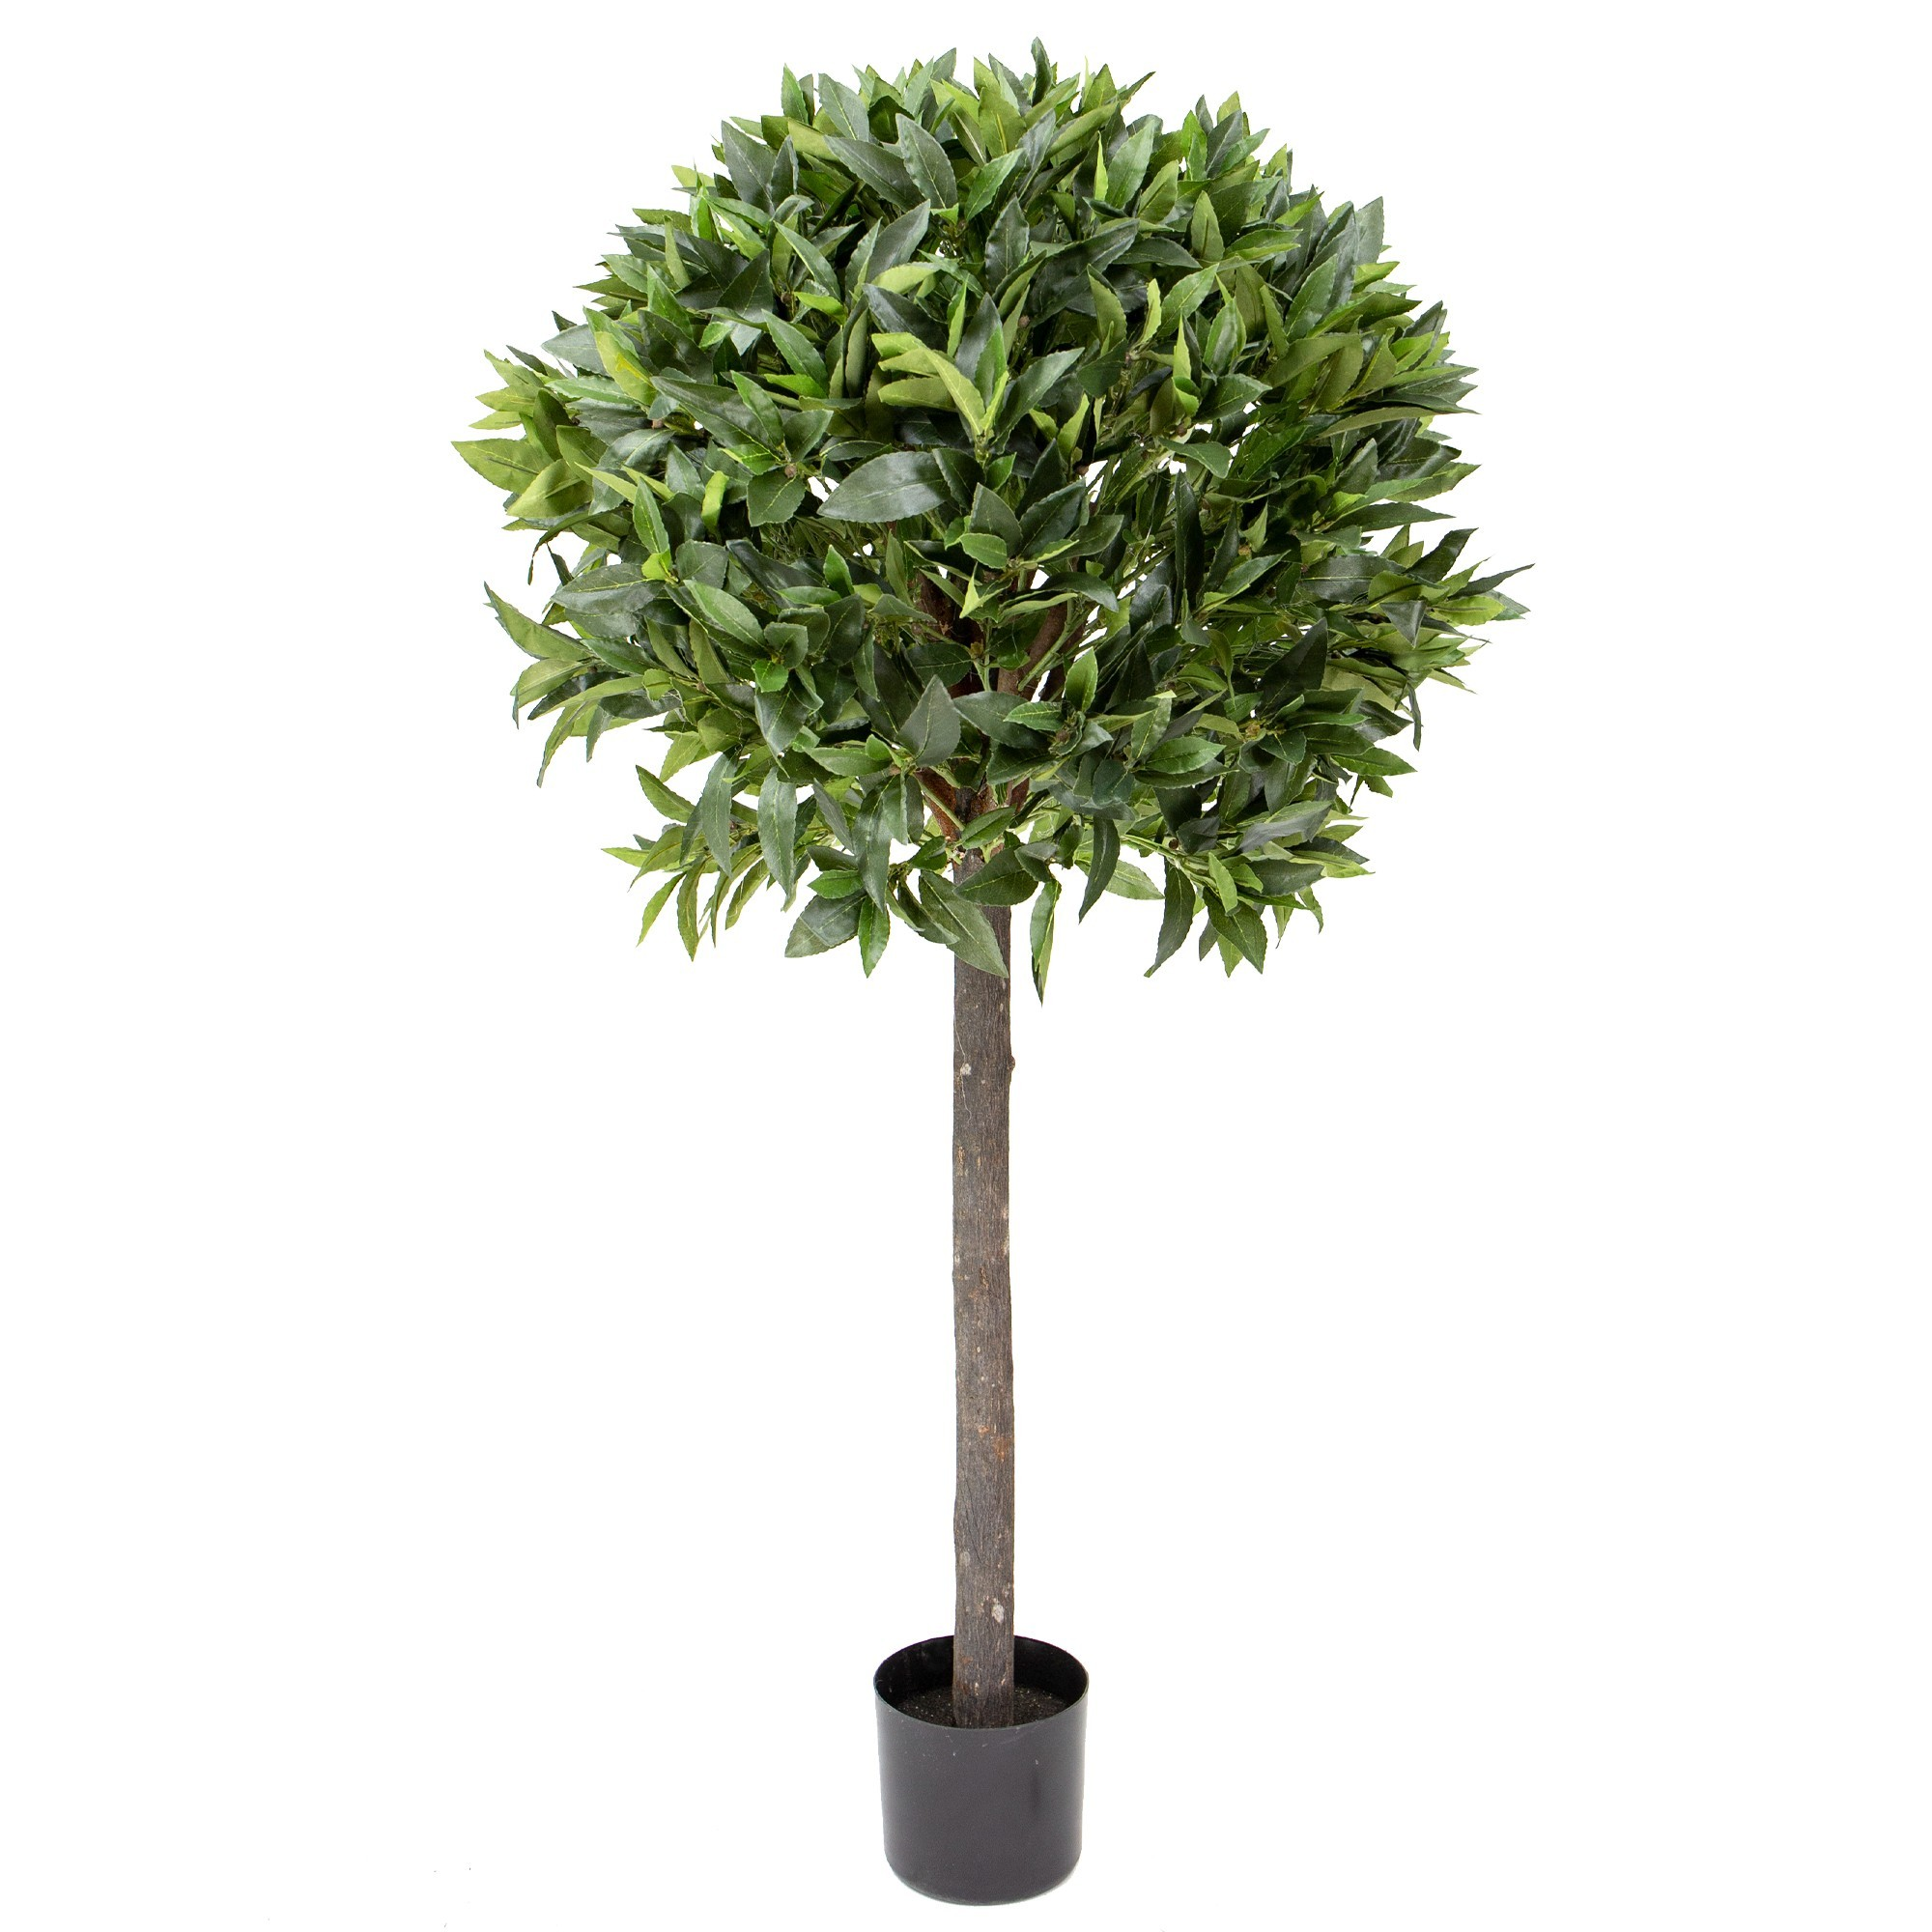 Glamorous Fusion Potted Artificial Bay Leaf Topiary, 125cm